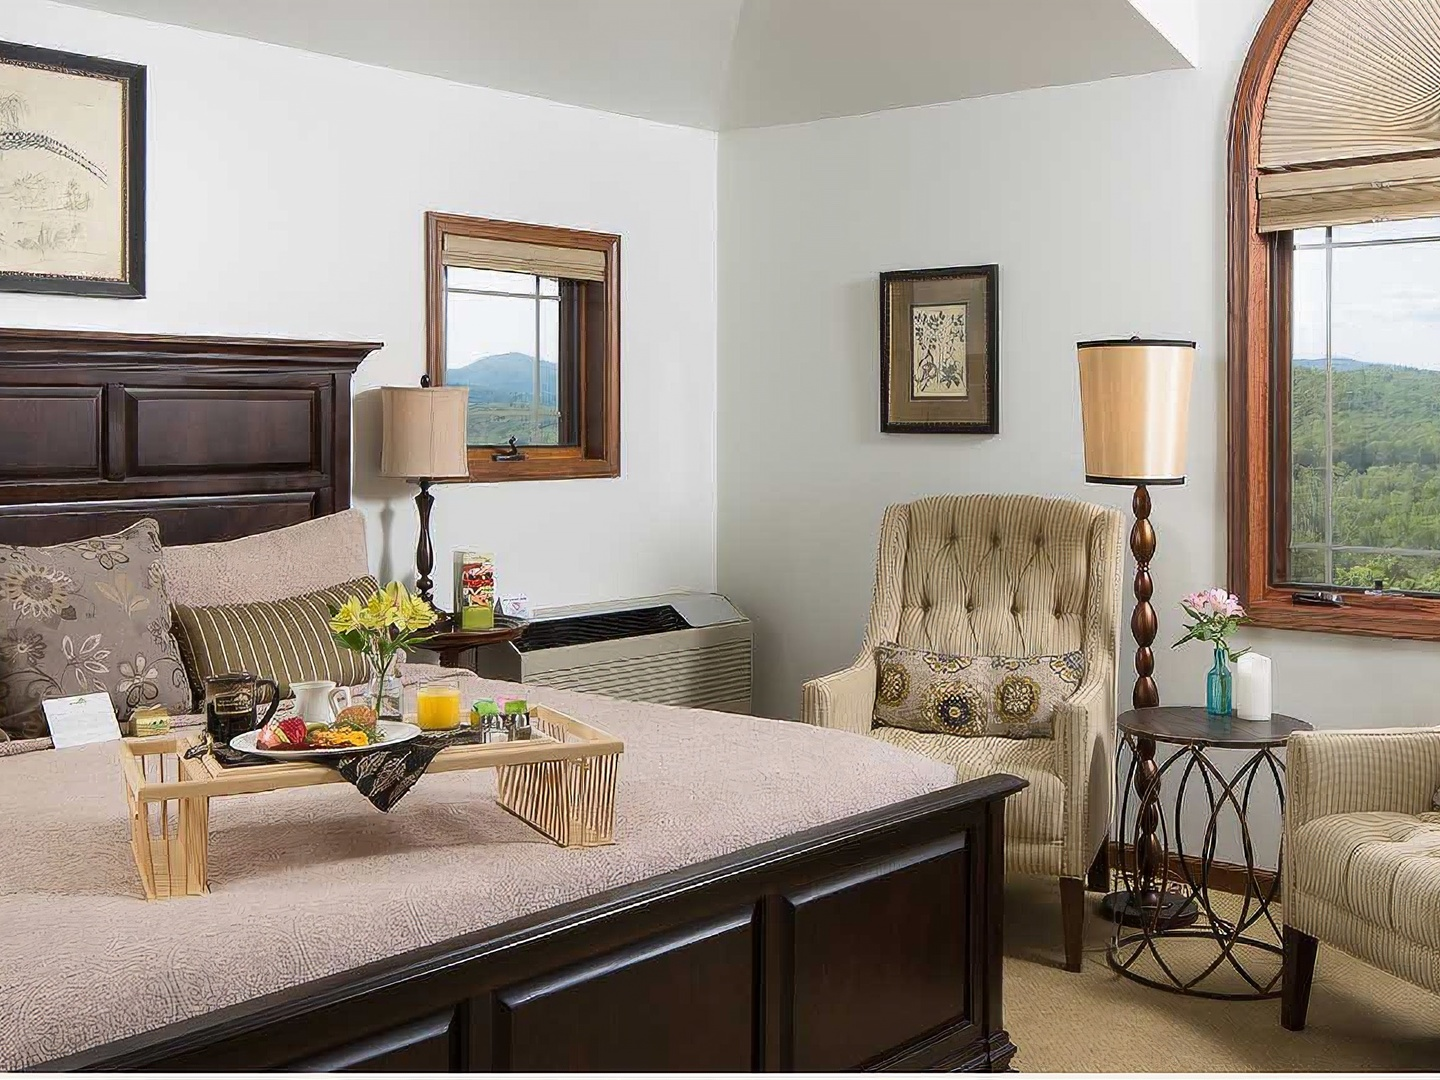 A living room filled with furniture and a fireplace at Lucille's Mountain Top Inn & Spa.